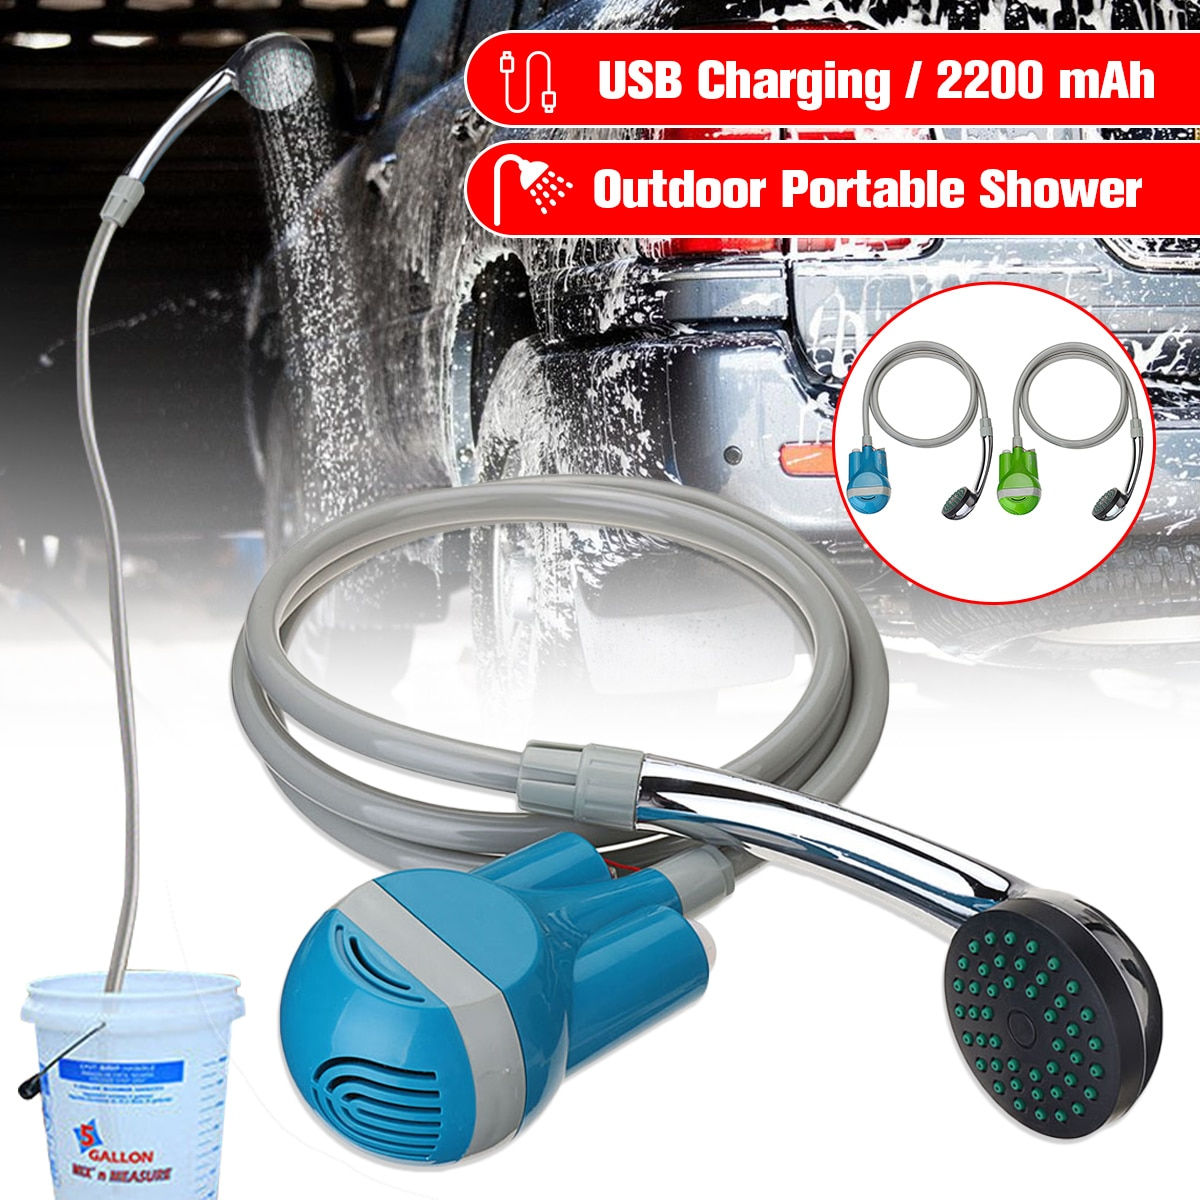 Portable Camping ShowerCar Washer 12V Wireless Car Shower DC 12V pump pressure shower Outdoor Travel Caravan Van Pet Water Tank